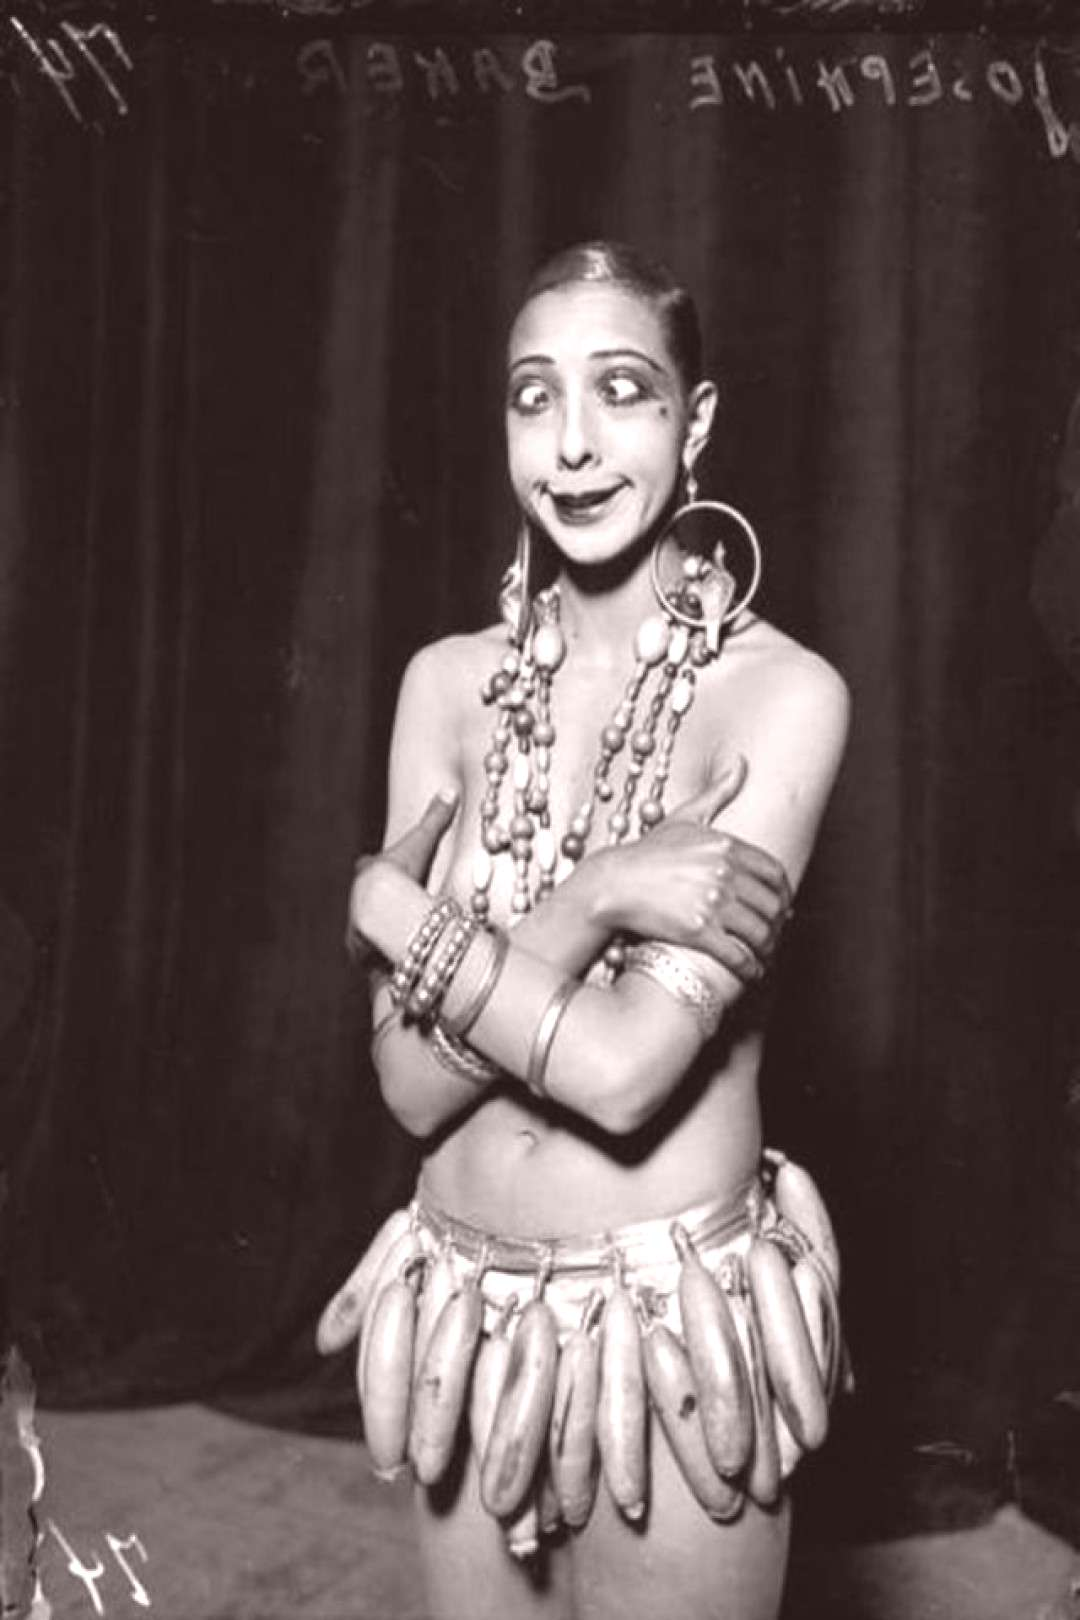 The Black Pearl 28 Beautiful Vintage Photos of a Young Josephine Baker in the 1920s ~ vintage ever